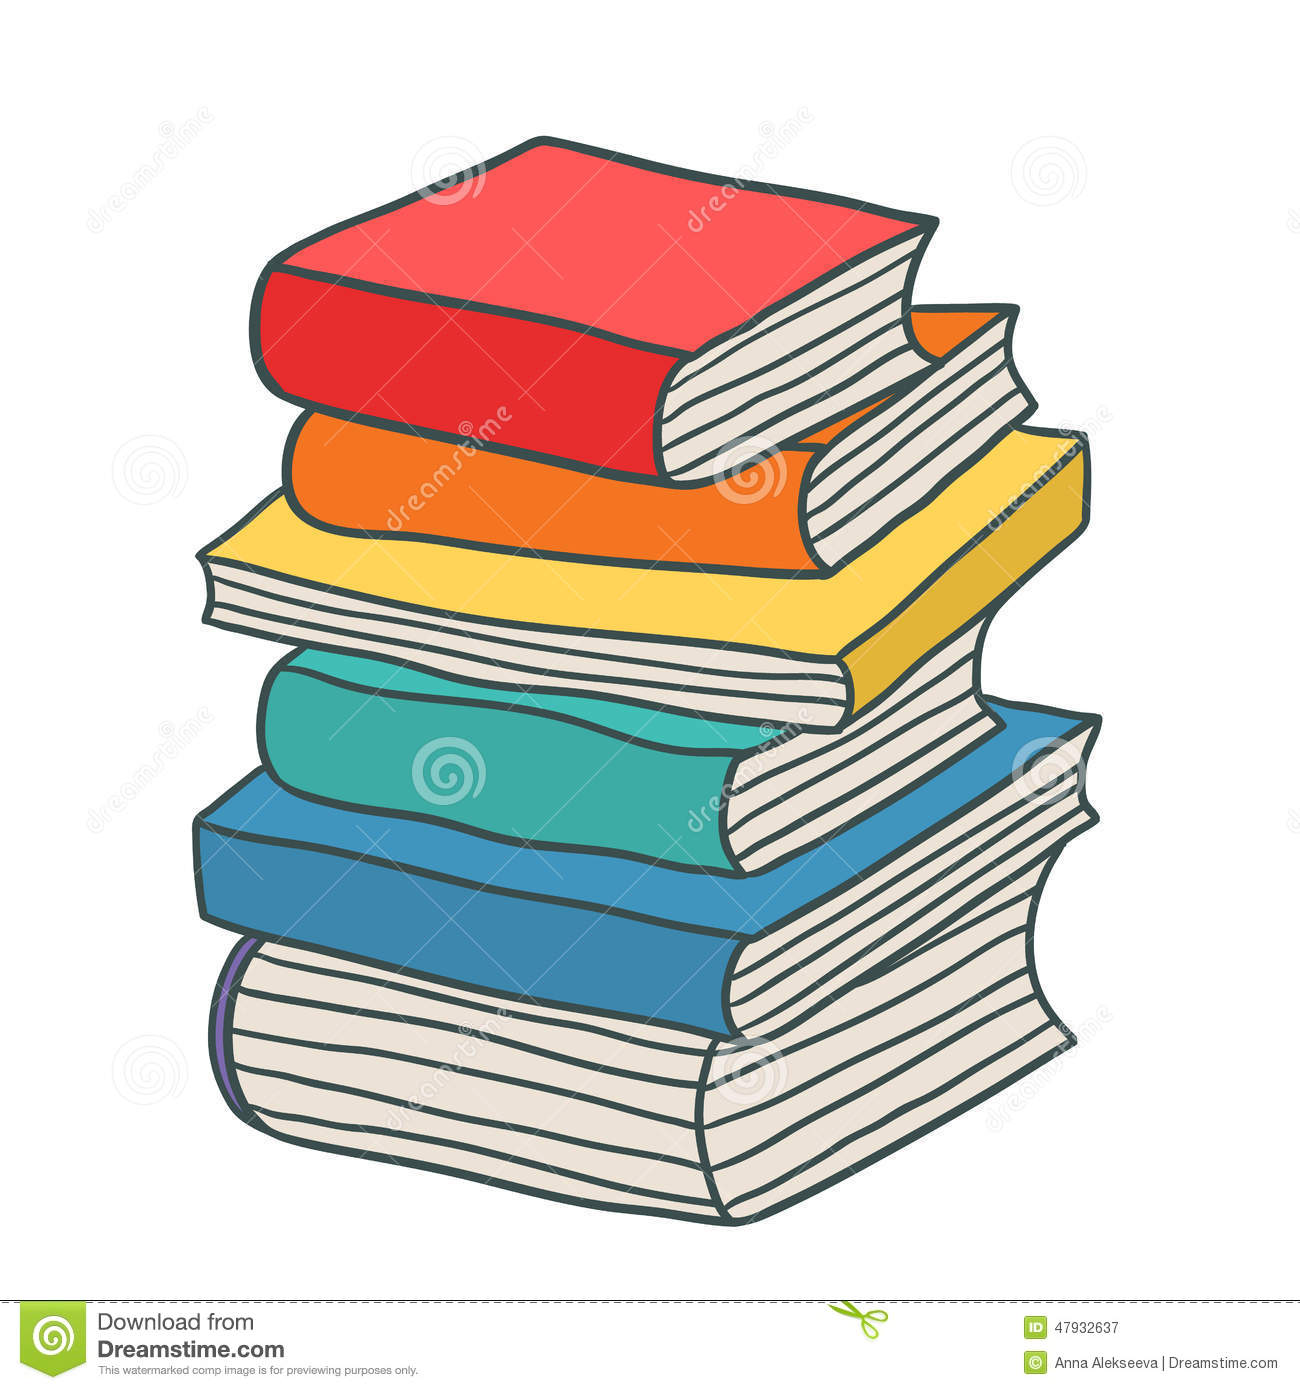 cartoon books stack drawn hand vector illustration background card dreamstime preview